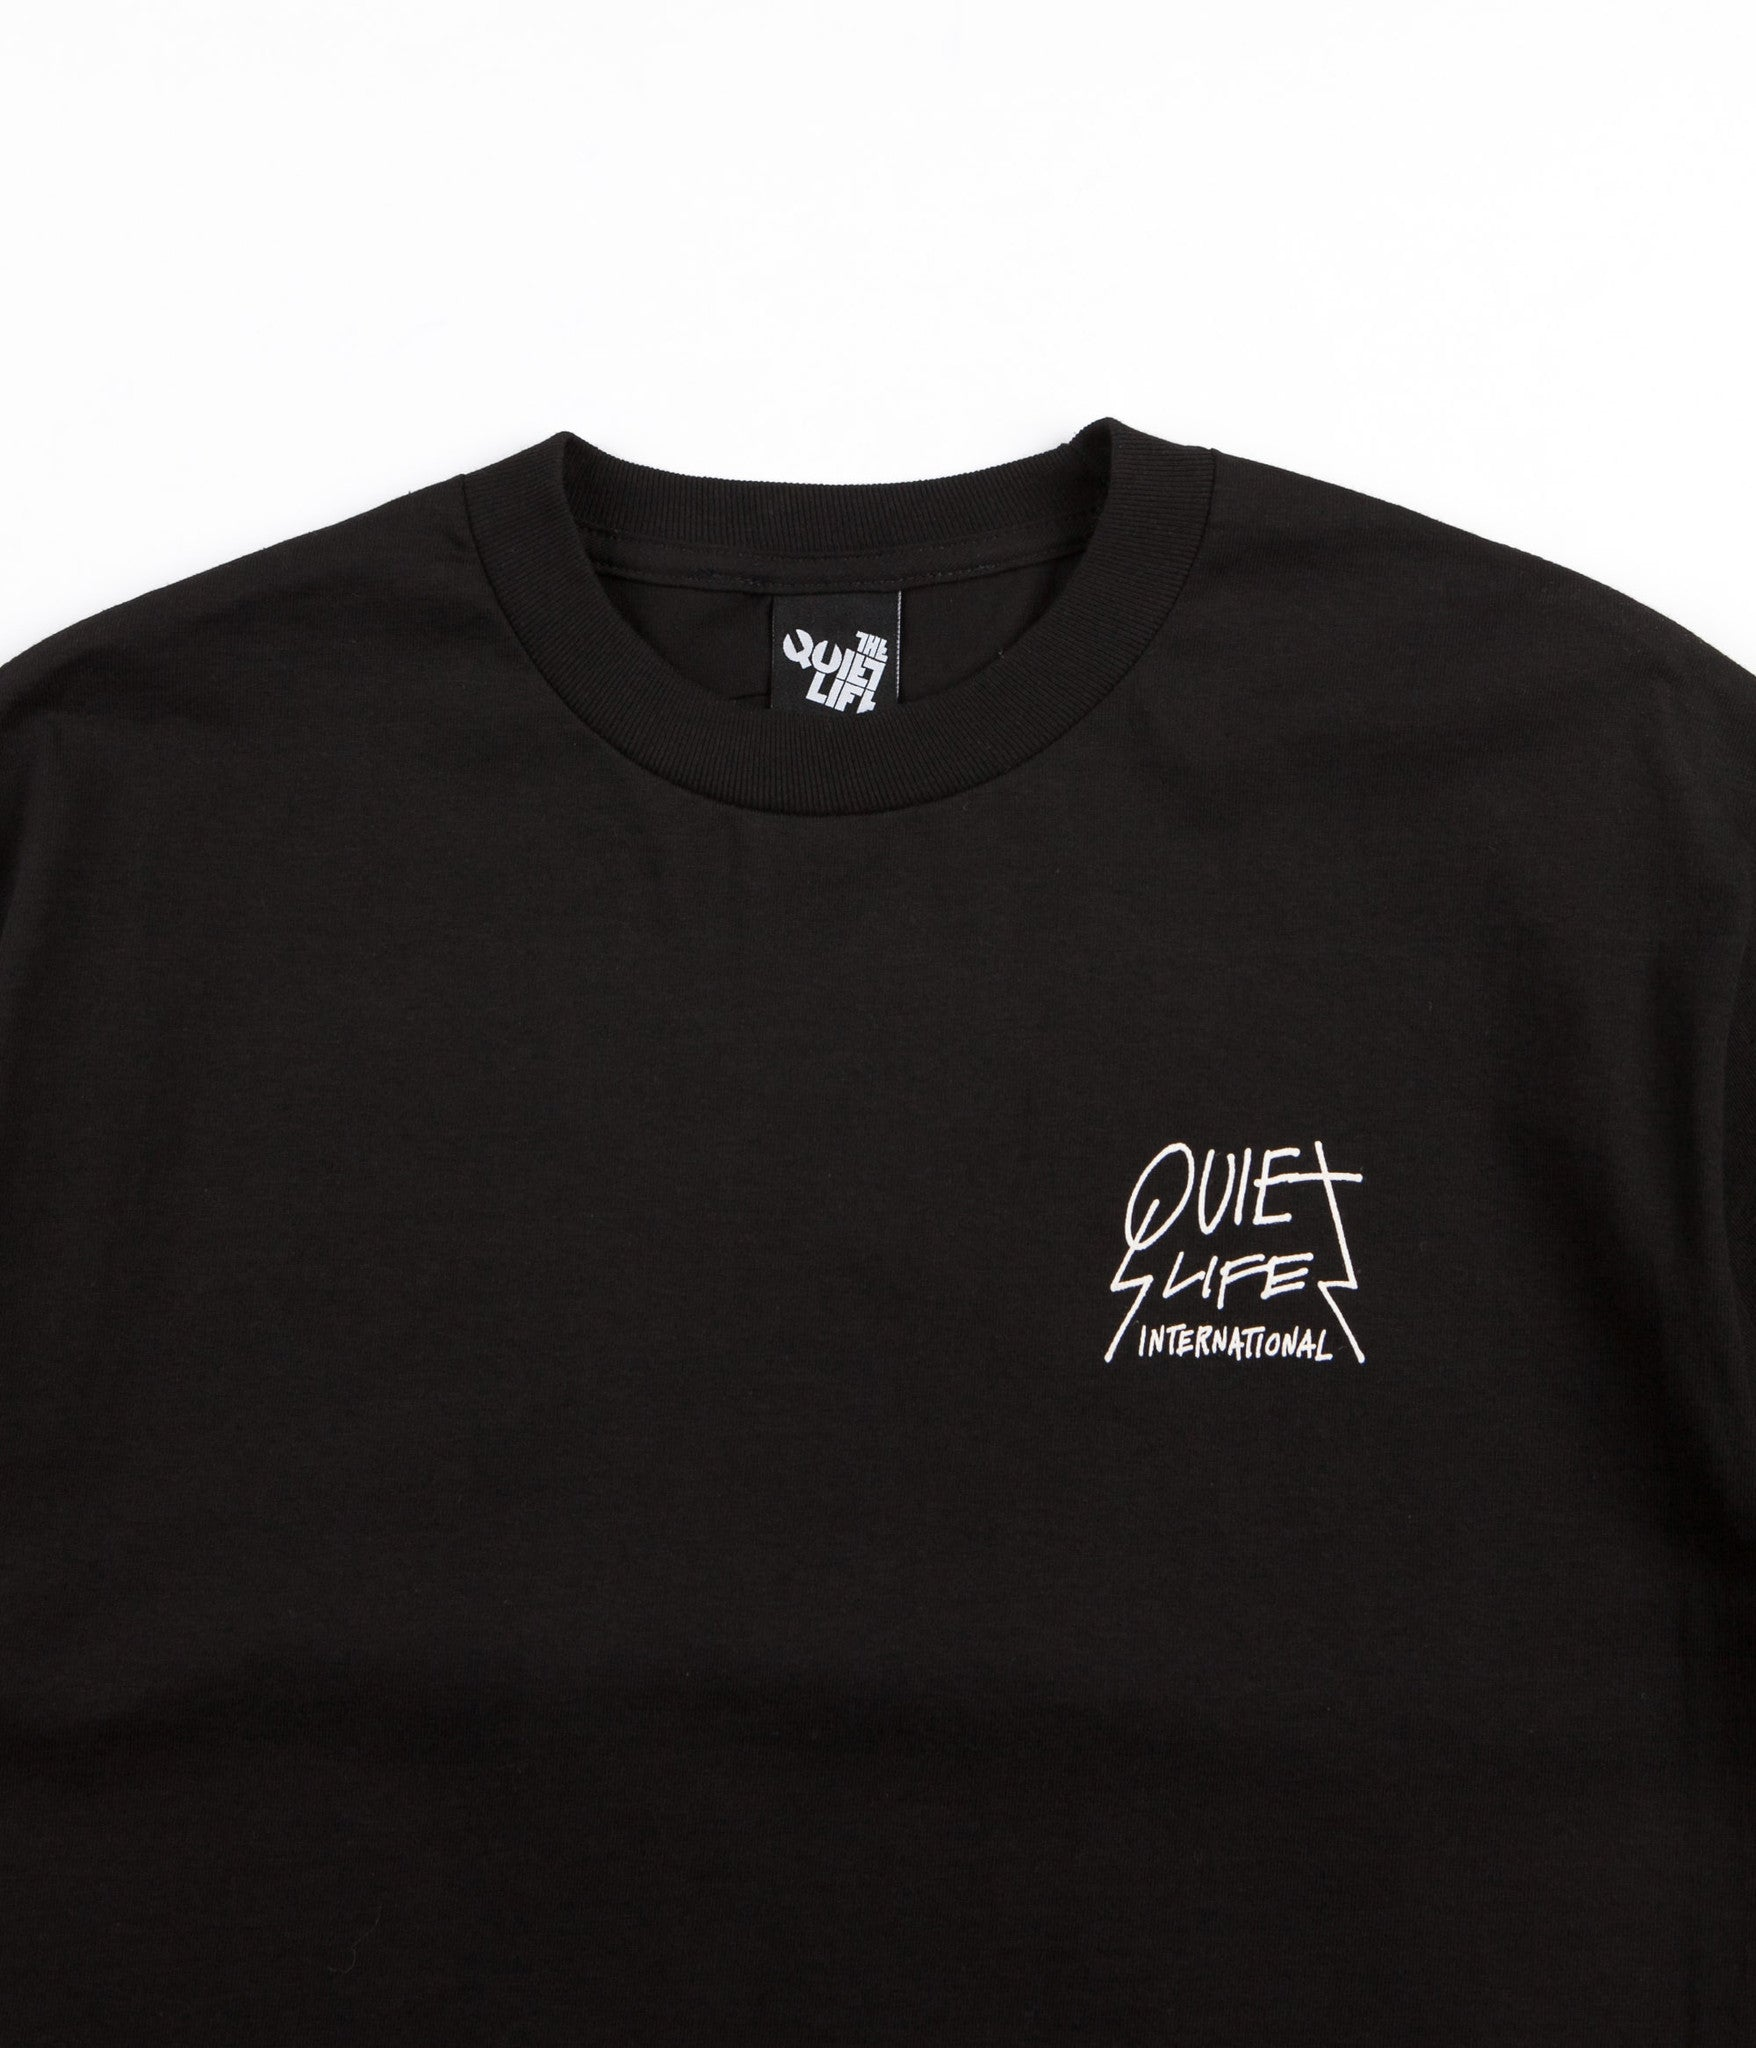 The Quiet Life International T-Shirt - Black